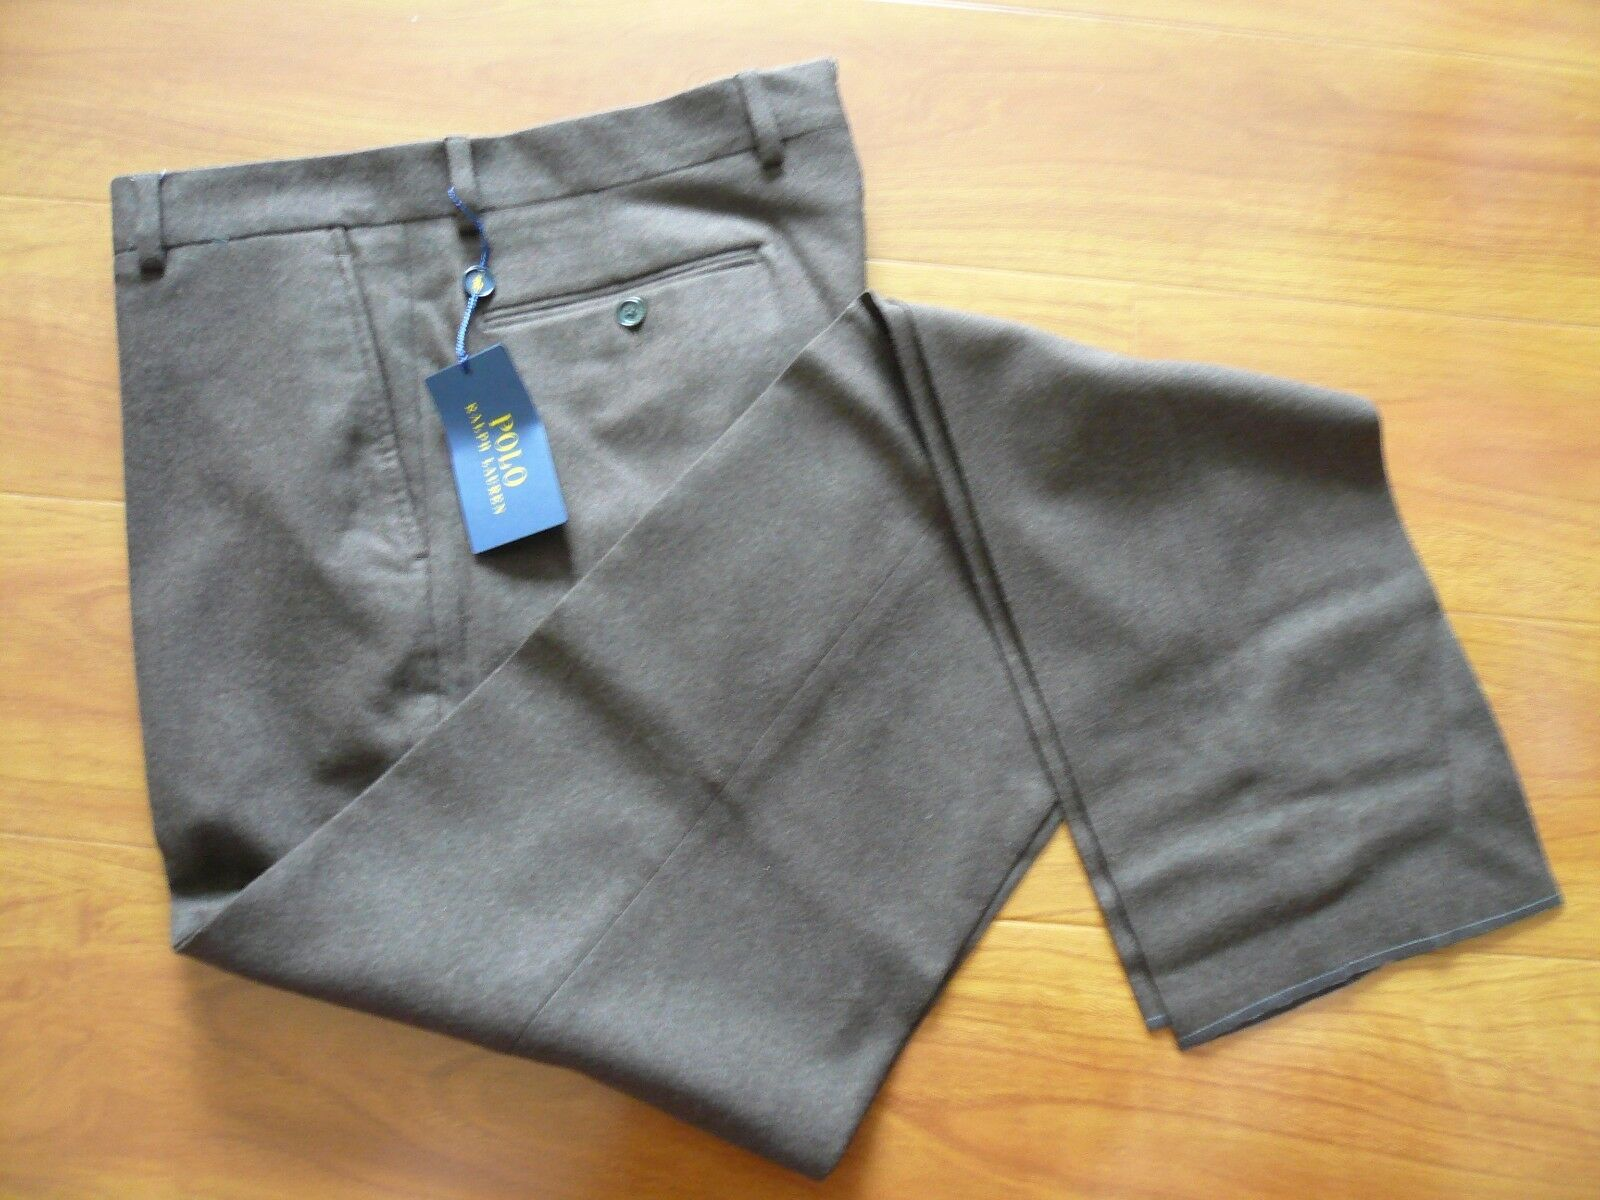 NWT  POLO RALPH LAUREN 100% WOOL DRESS PANTS SZ 30, MADE IN ITALY